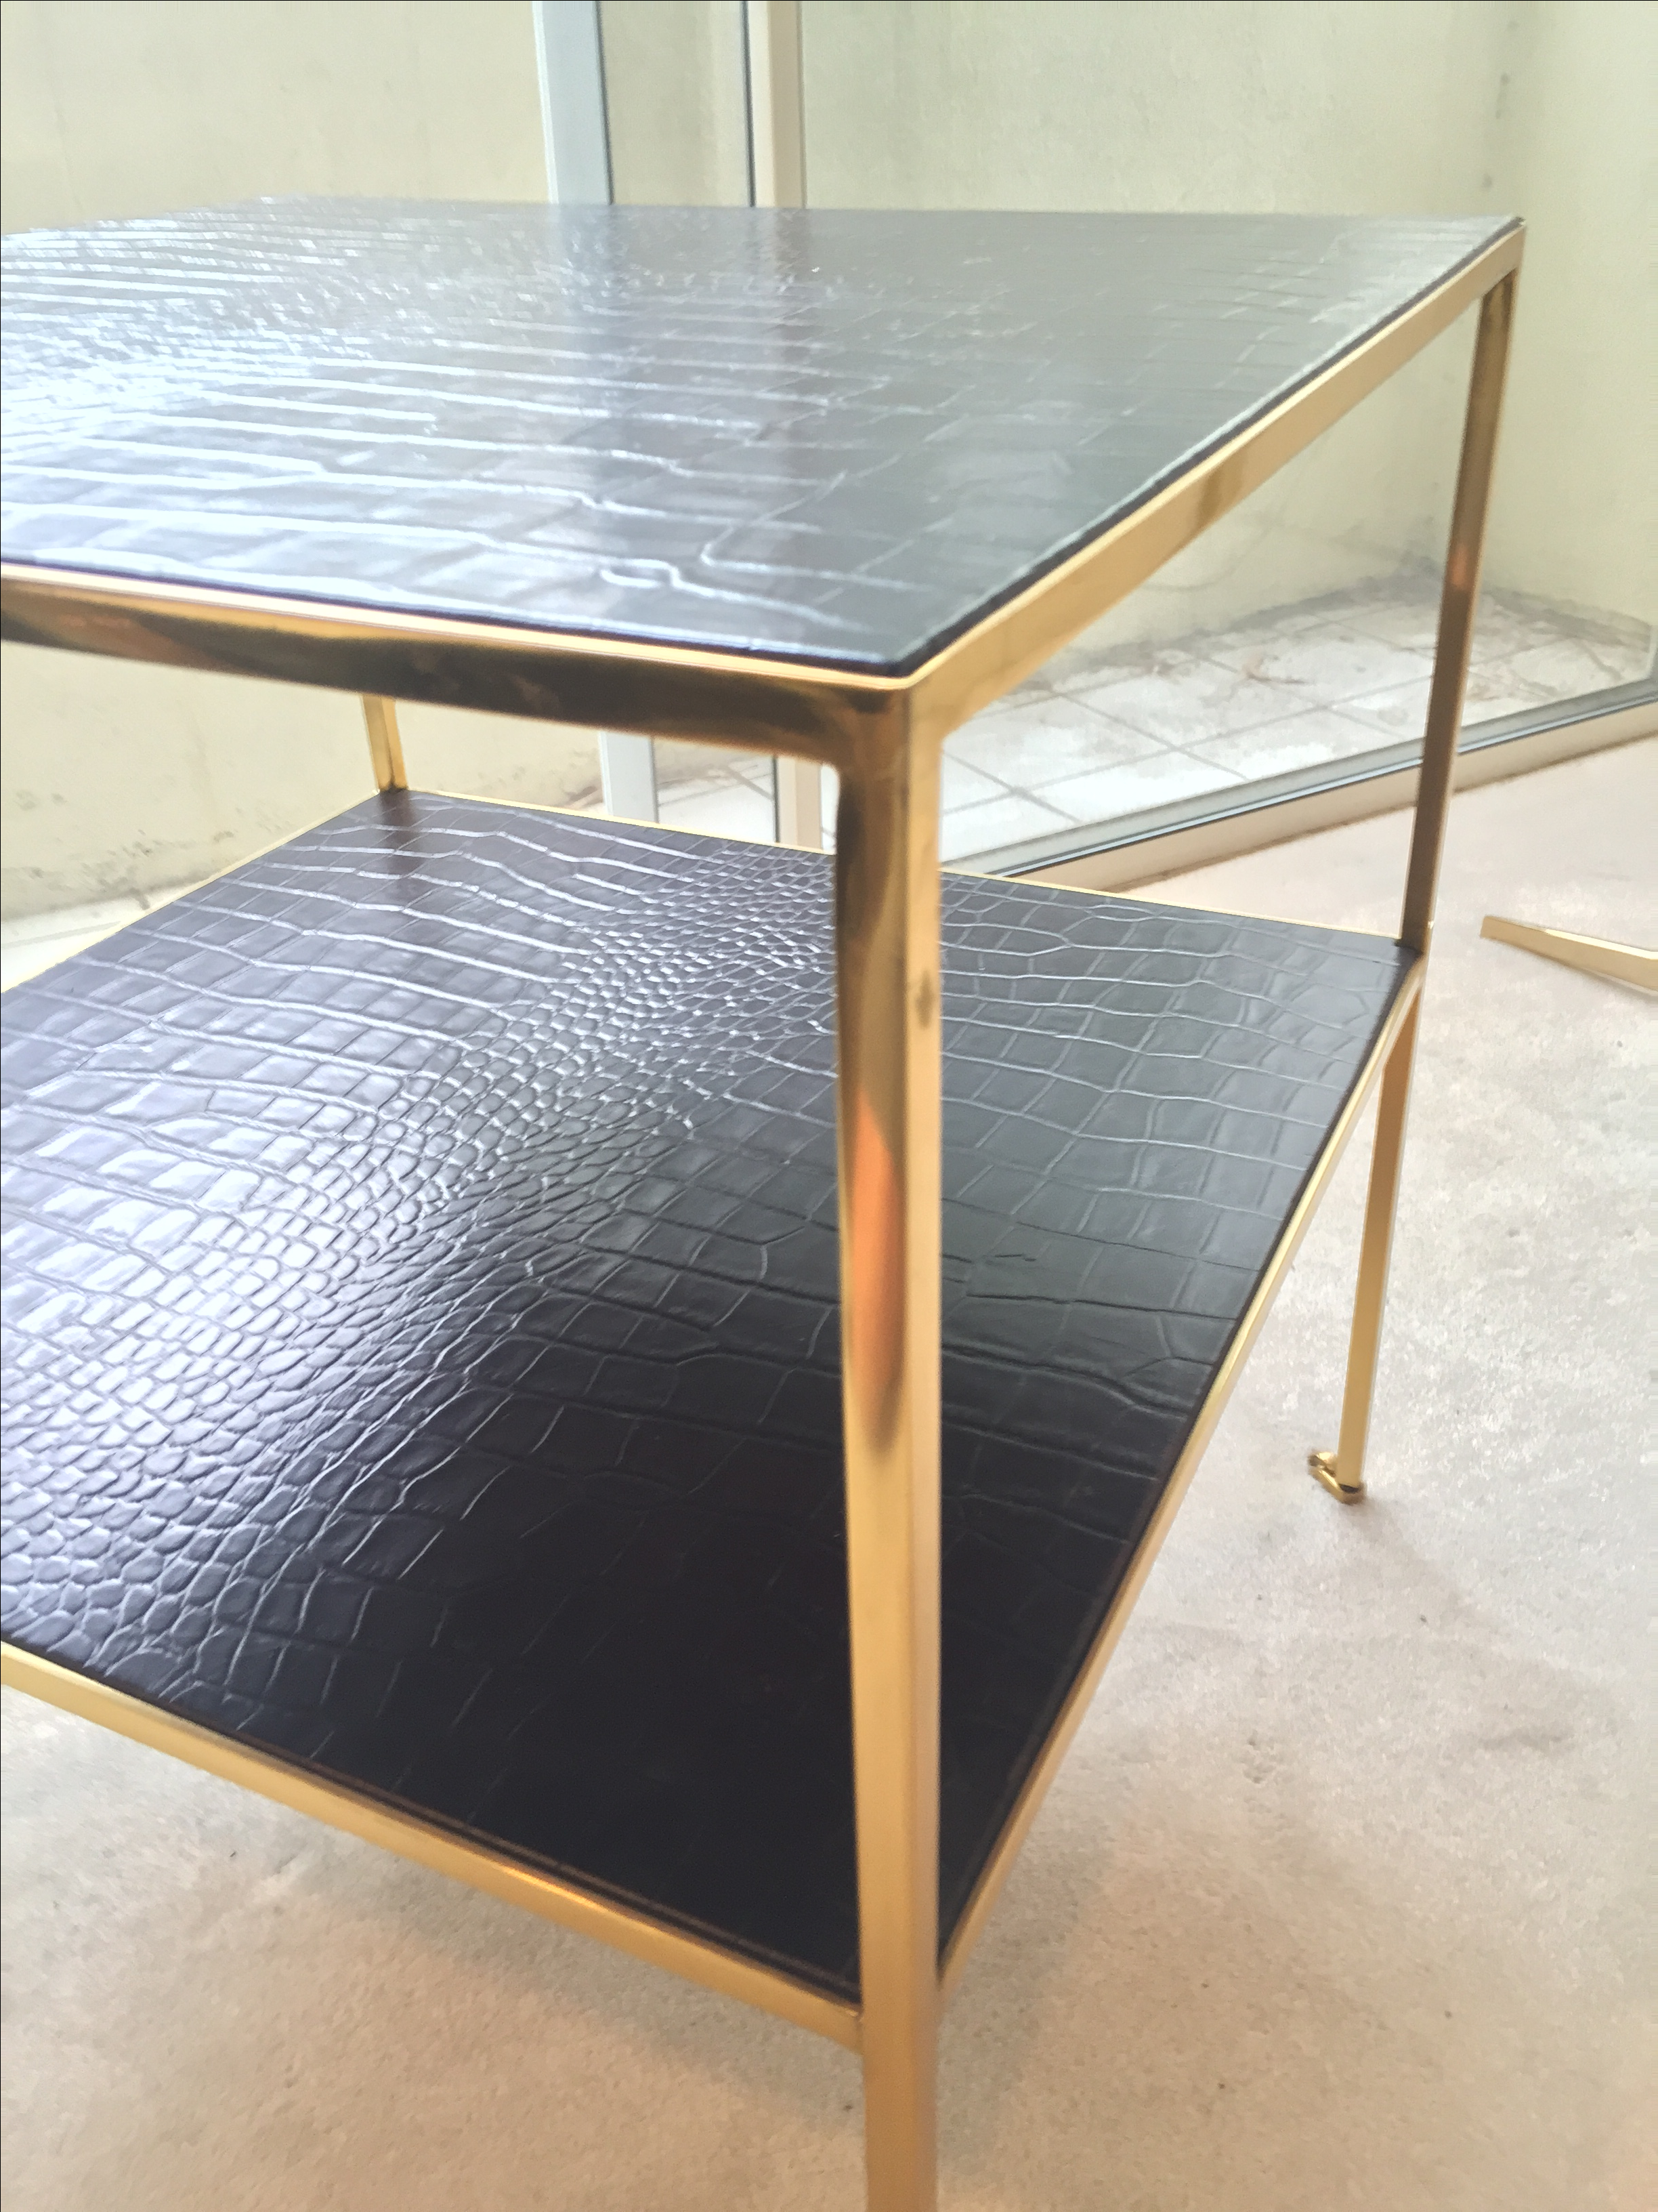 Ralph Lauren Leather U0026 Brass Rue Royale End Table   Image 6 Of 10